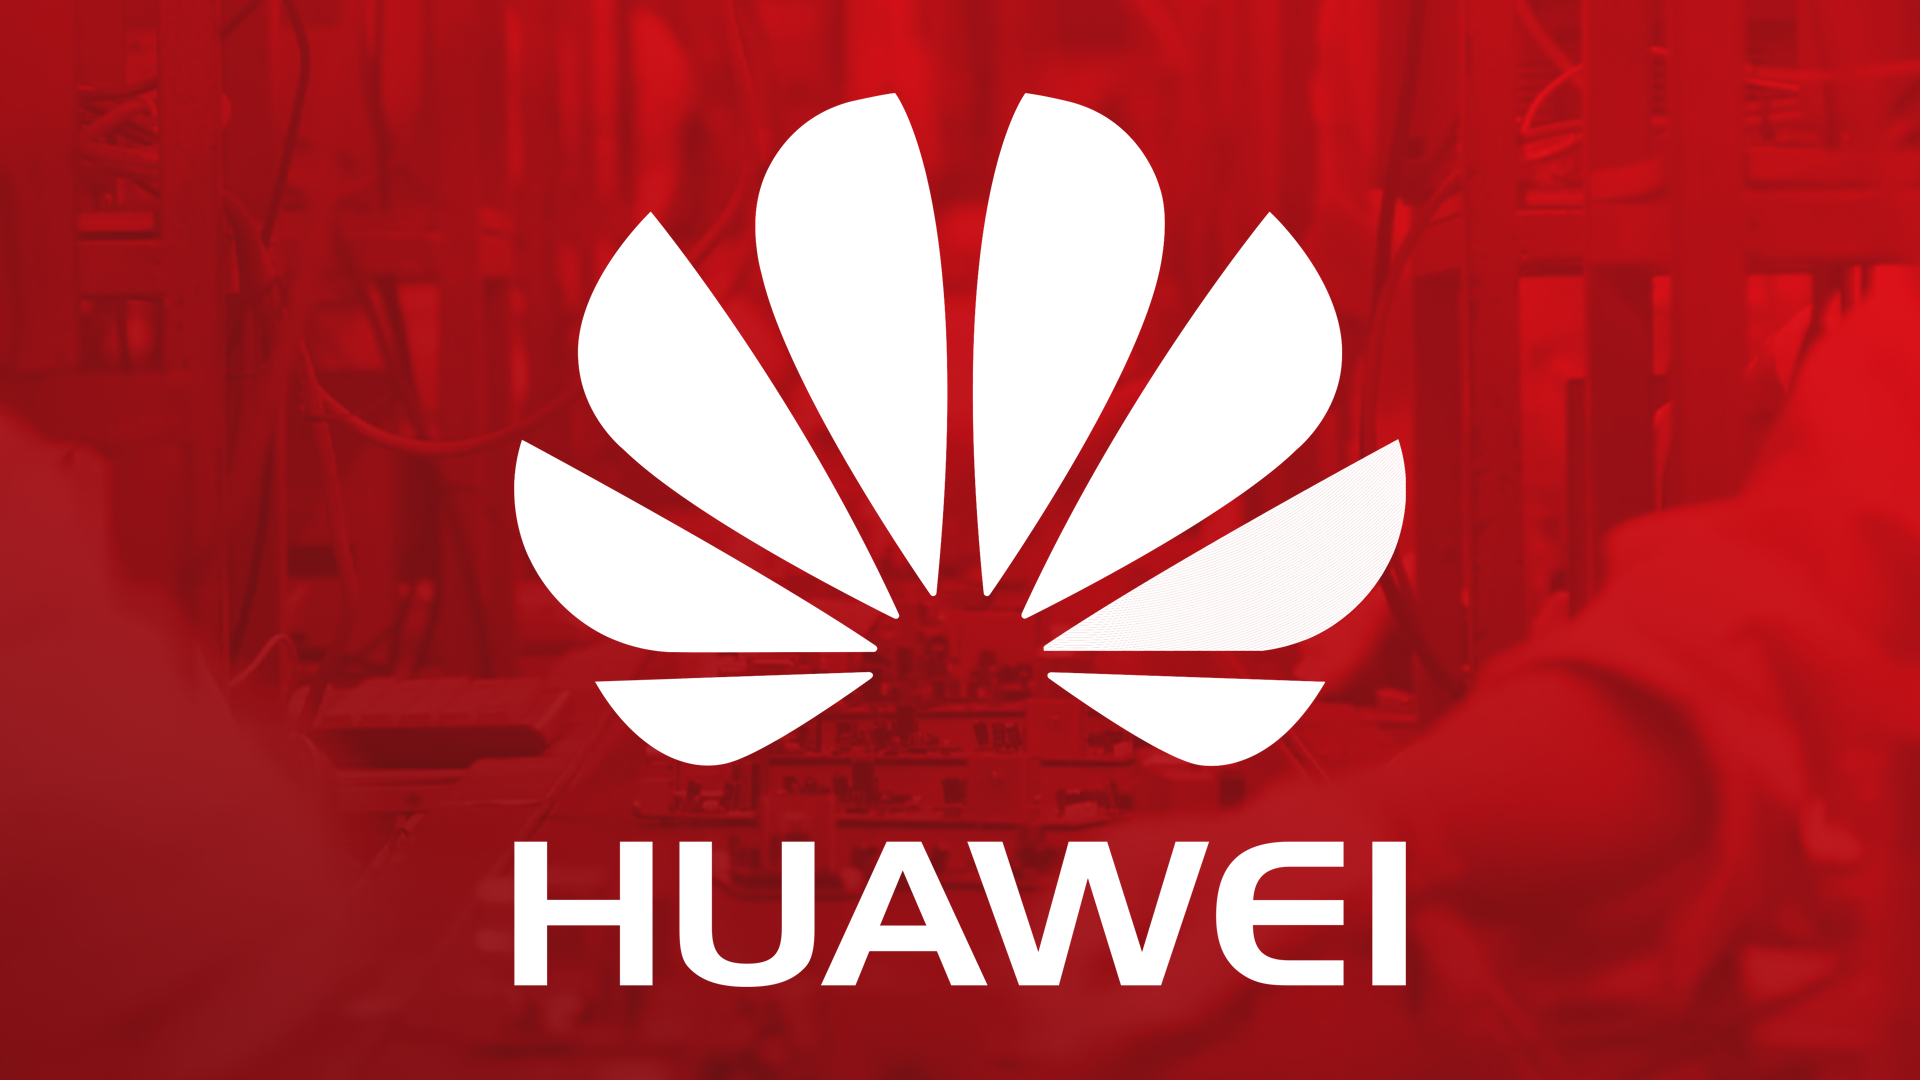 HUAWEI ACCUSED OF ATTEMPTING TO STEAL APPLE TRADE SECRETS